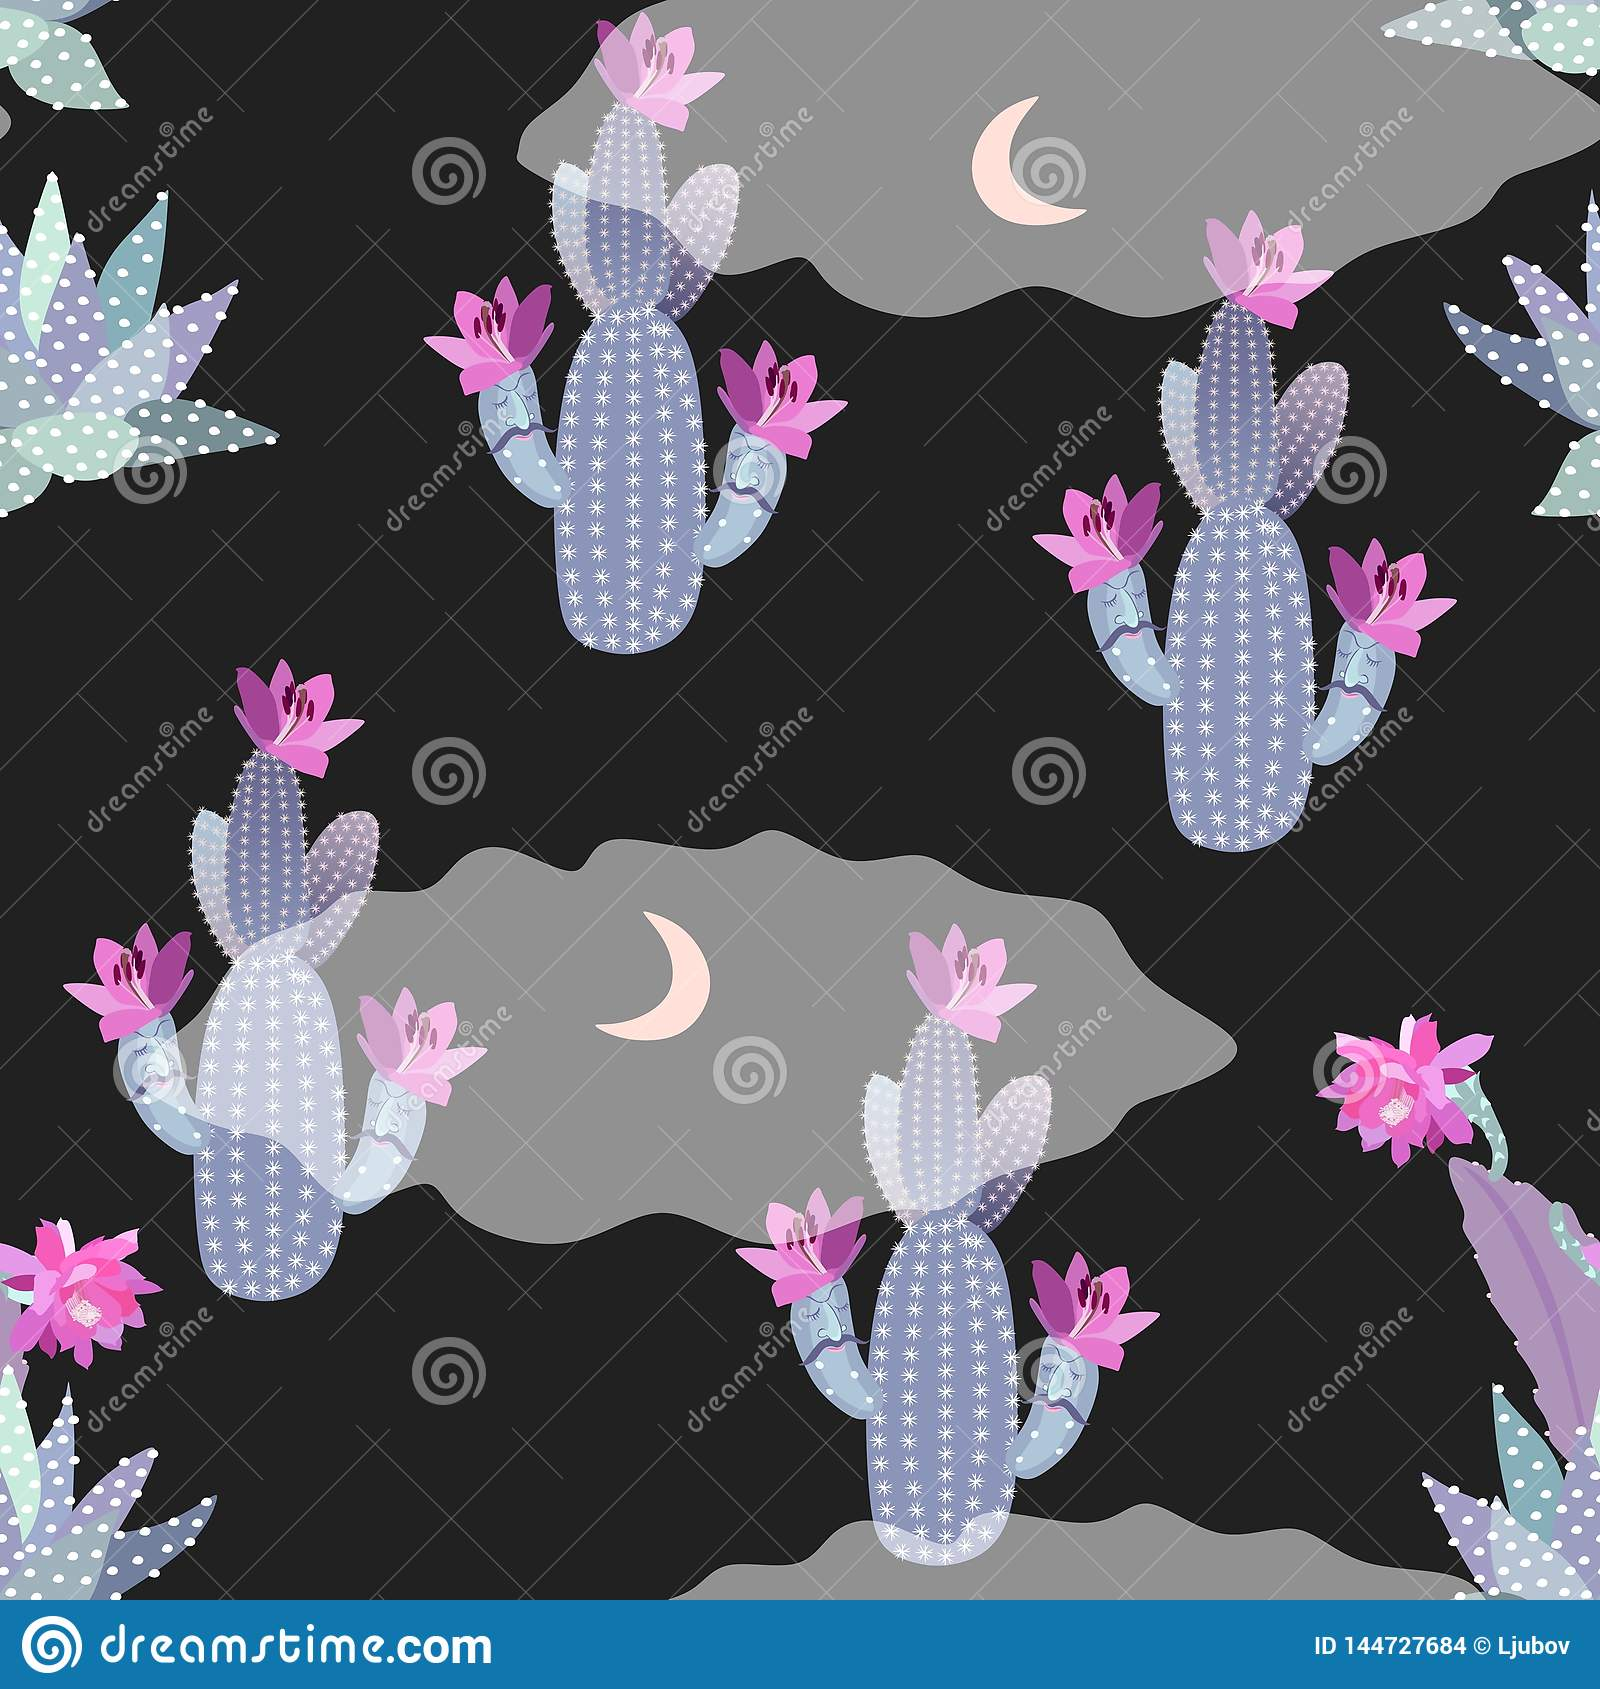 Cute Cartoon Seamless Pattern With Blooming Cacti And Succulents Moon And Clouds Funny Night Landscape Desert Landscape Print Stock Vector Illustration Of Funny Pink 144727684